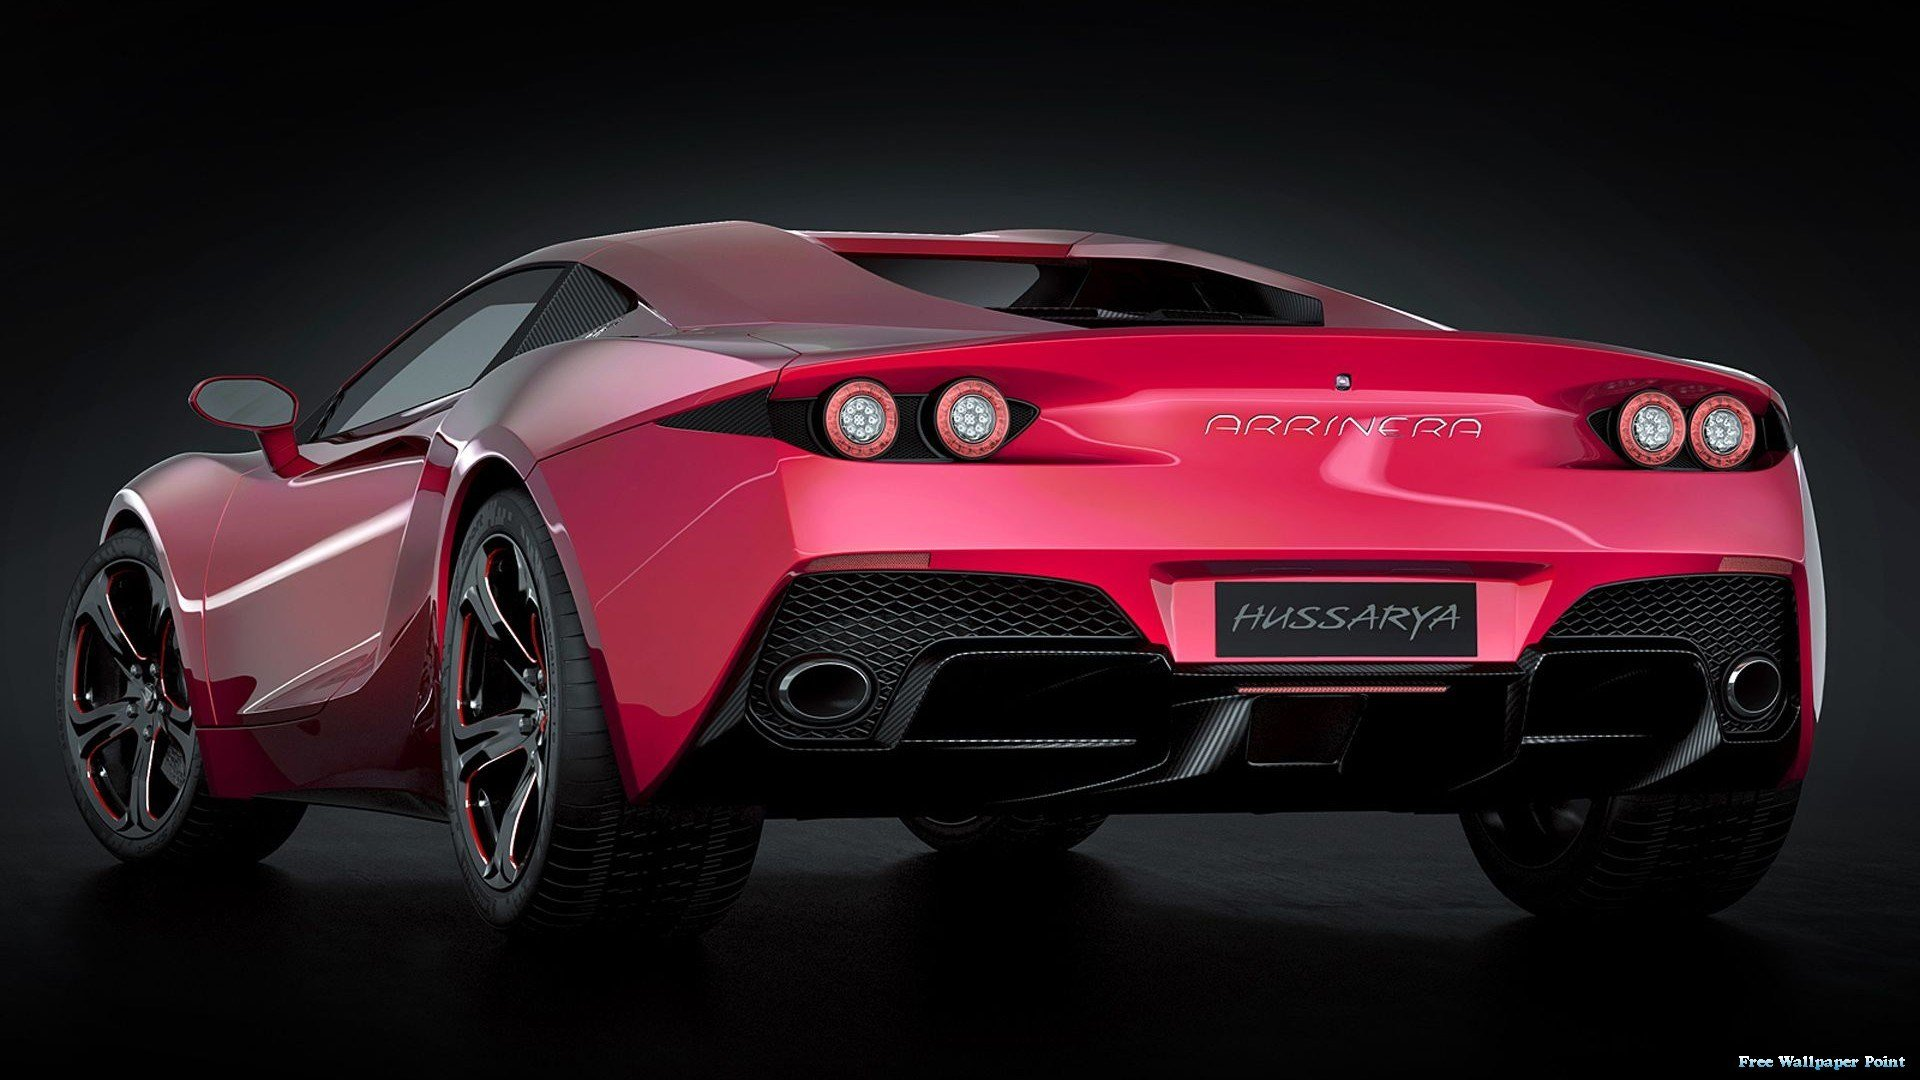 New Arrinera Hussarya Muscle Cars Zone On This Month